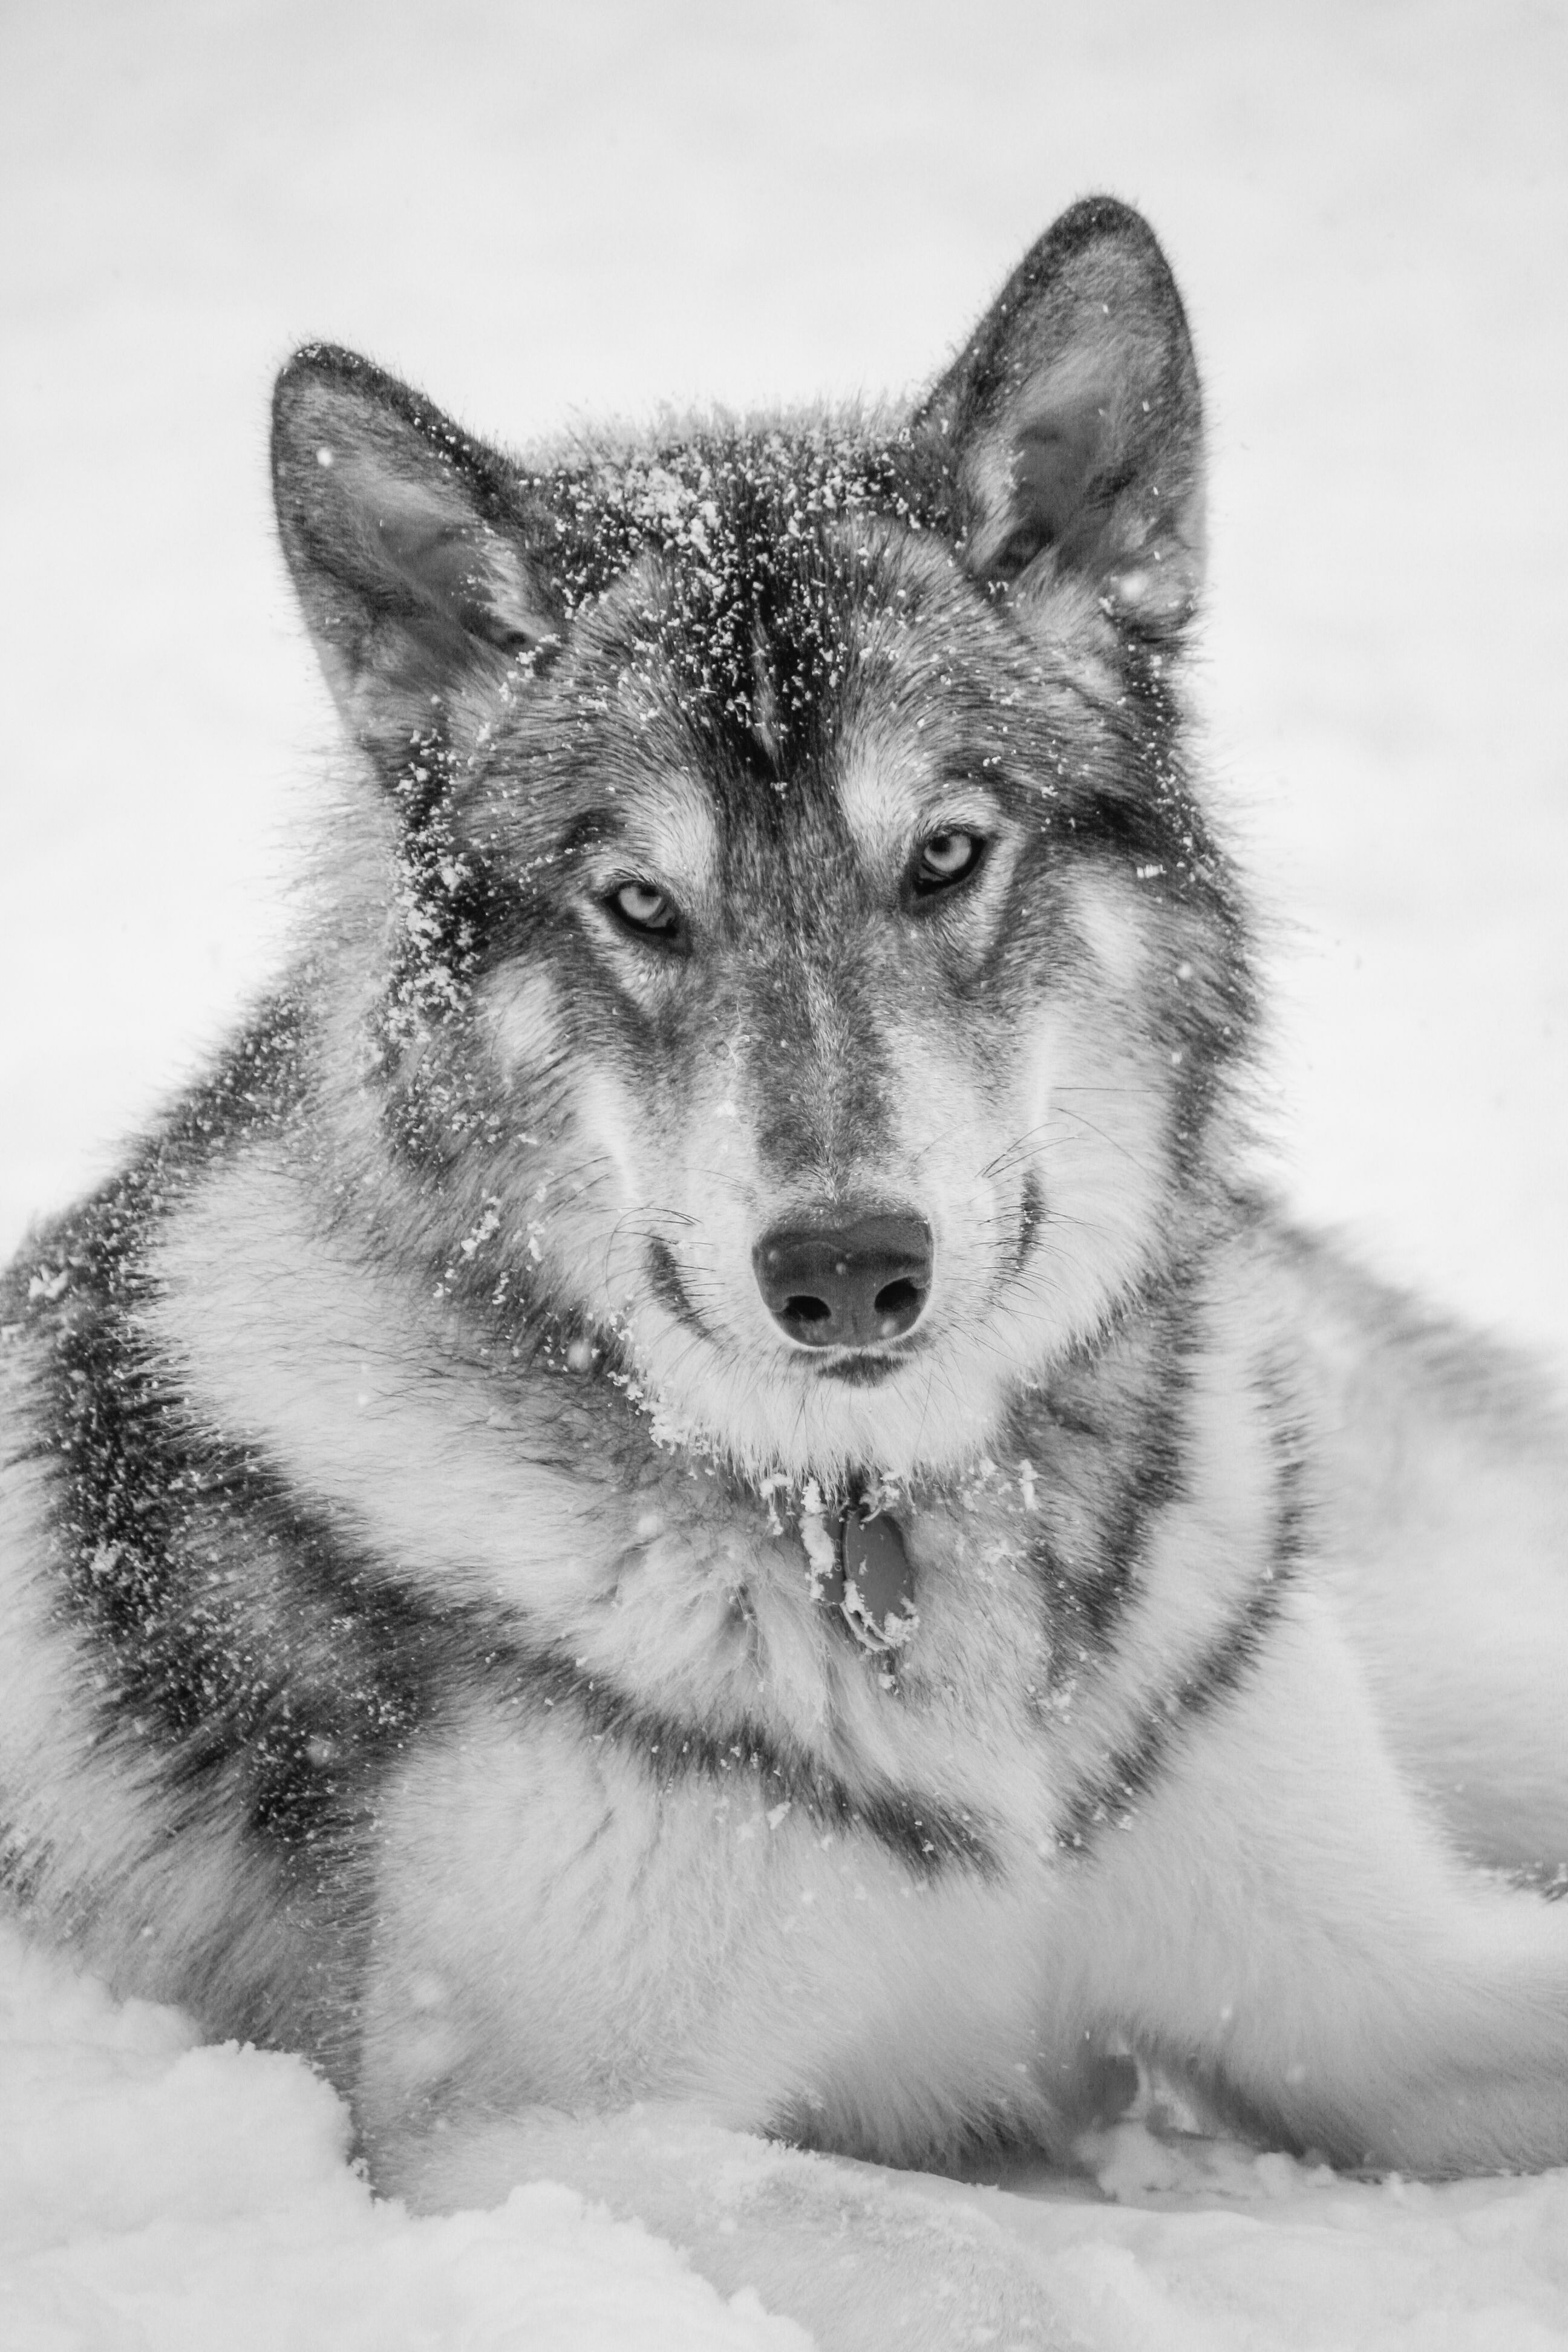 Alaskan Noble Companion Dog - If I was going to have a big